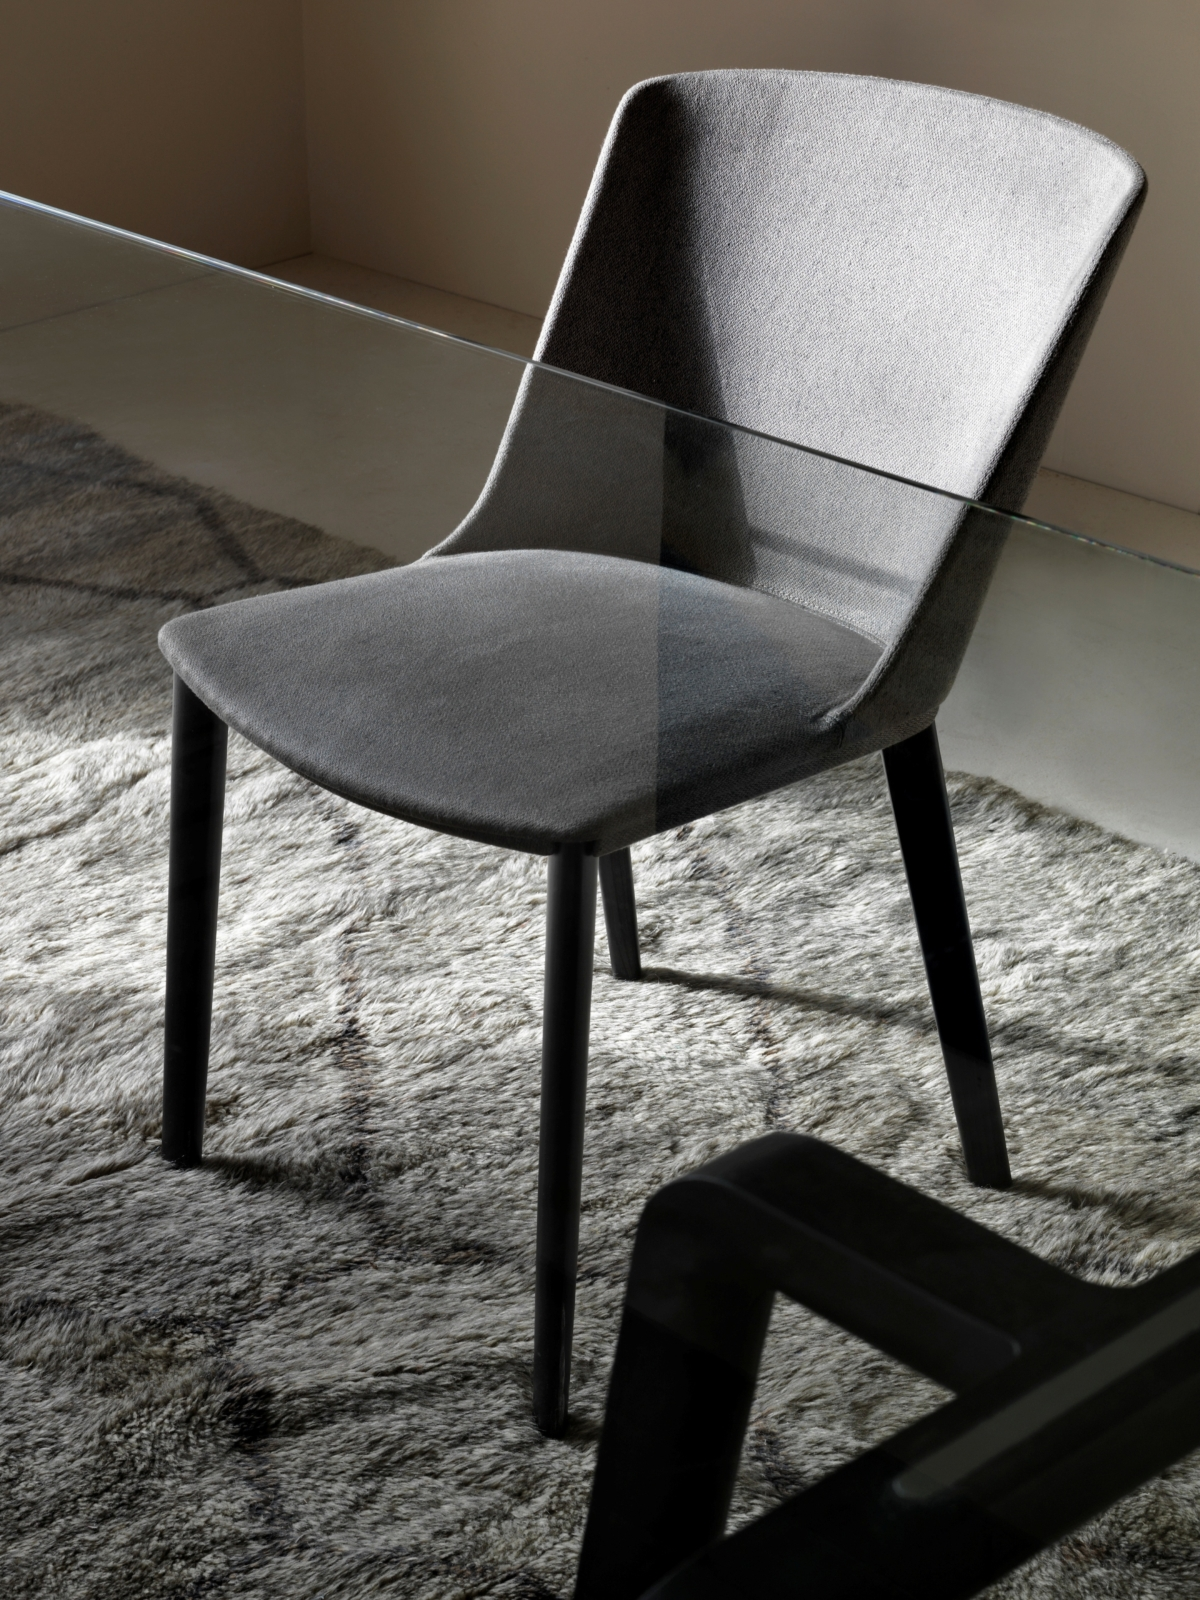 THE FRANCESA by Lievore Altherr Molina for Driade